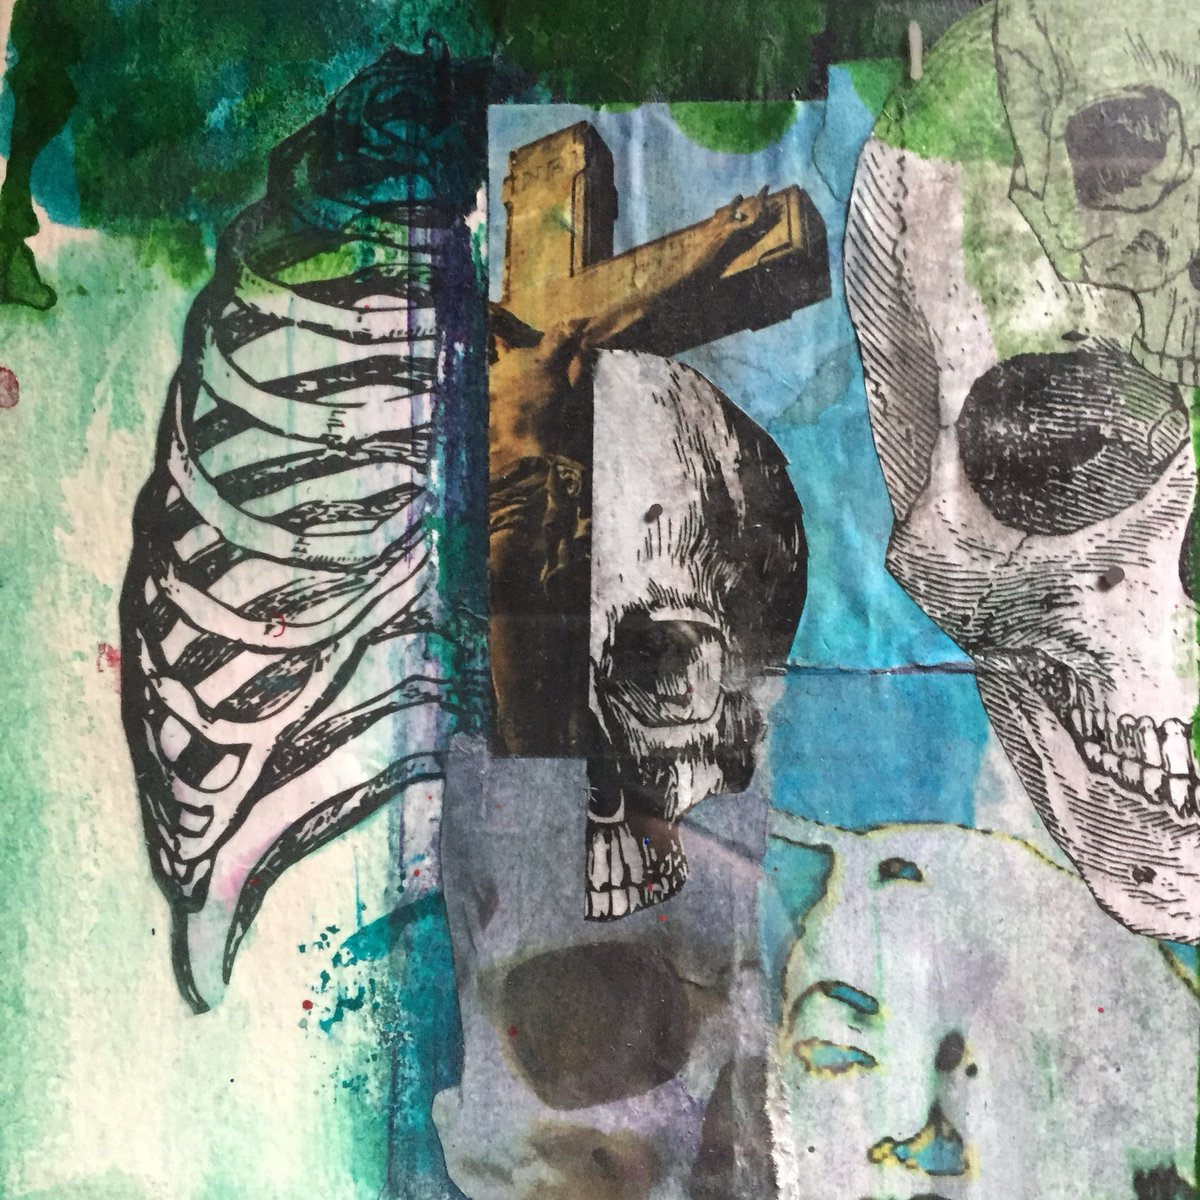 Cyghost On Twitter Art Artwork Collage Collageart Mixedmedia